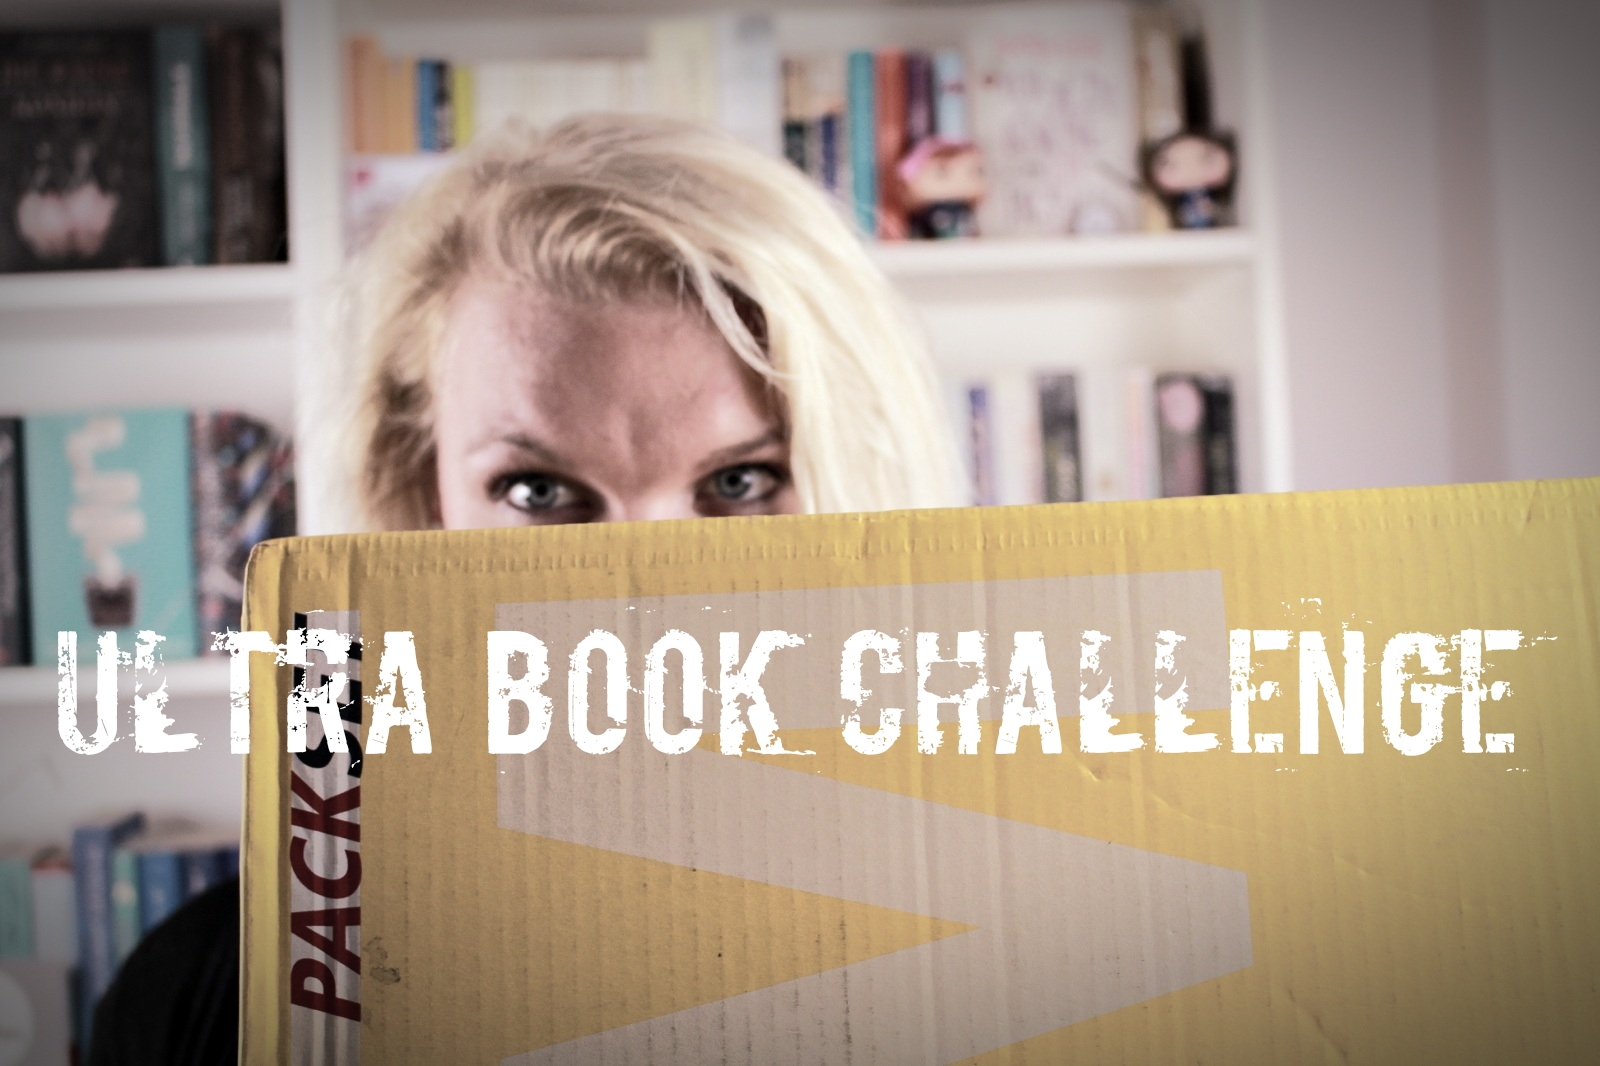 Unpacking und Start der ULTRA BOOK CHALLENGE